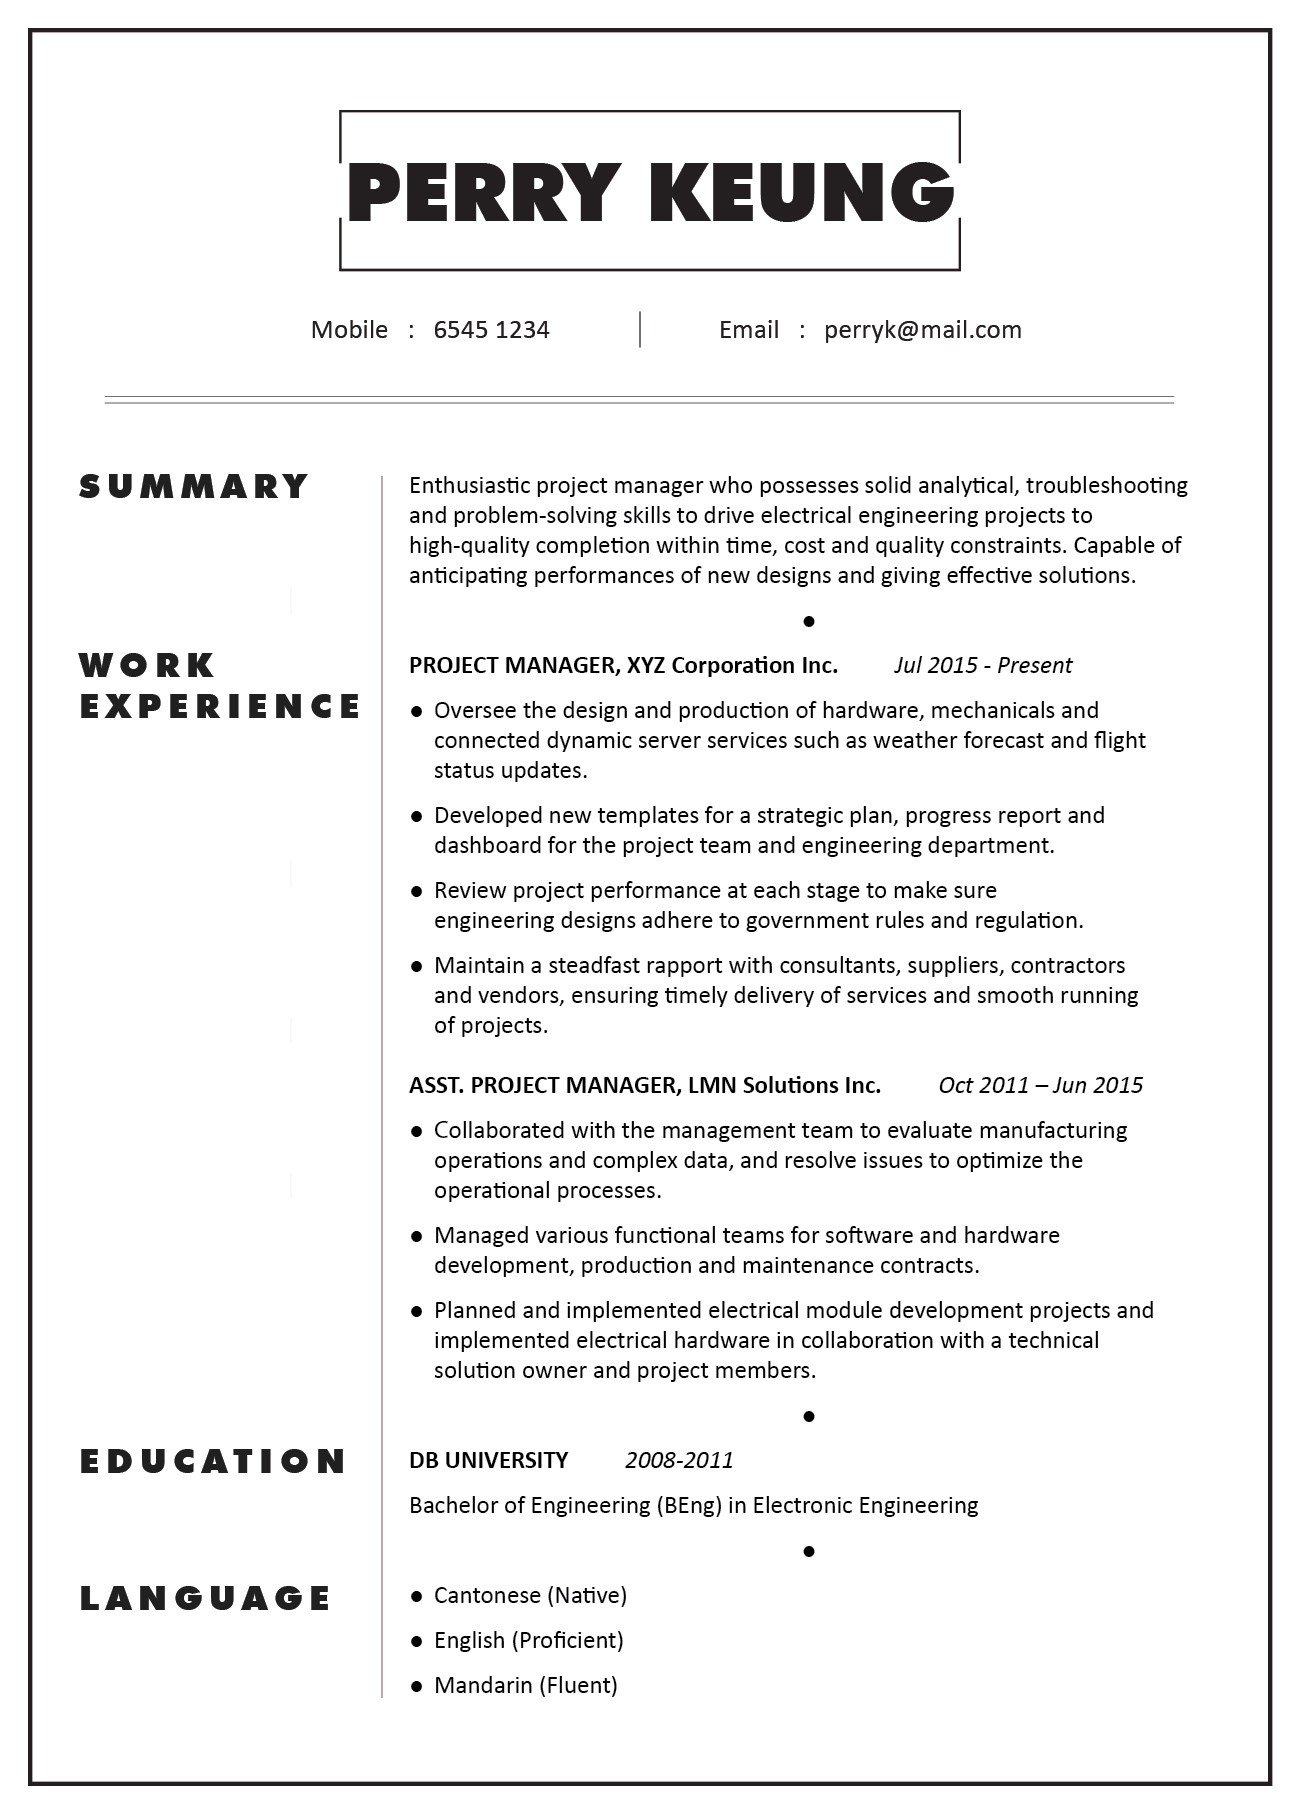 cv sample  u2013 project manager  electronic  electrical